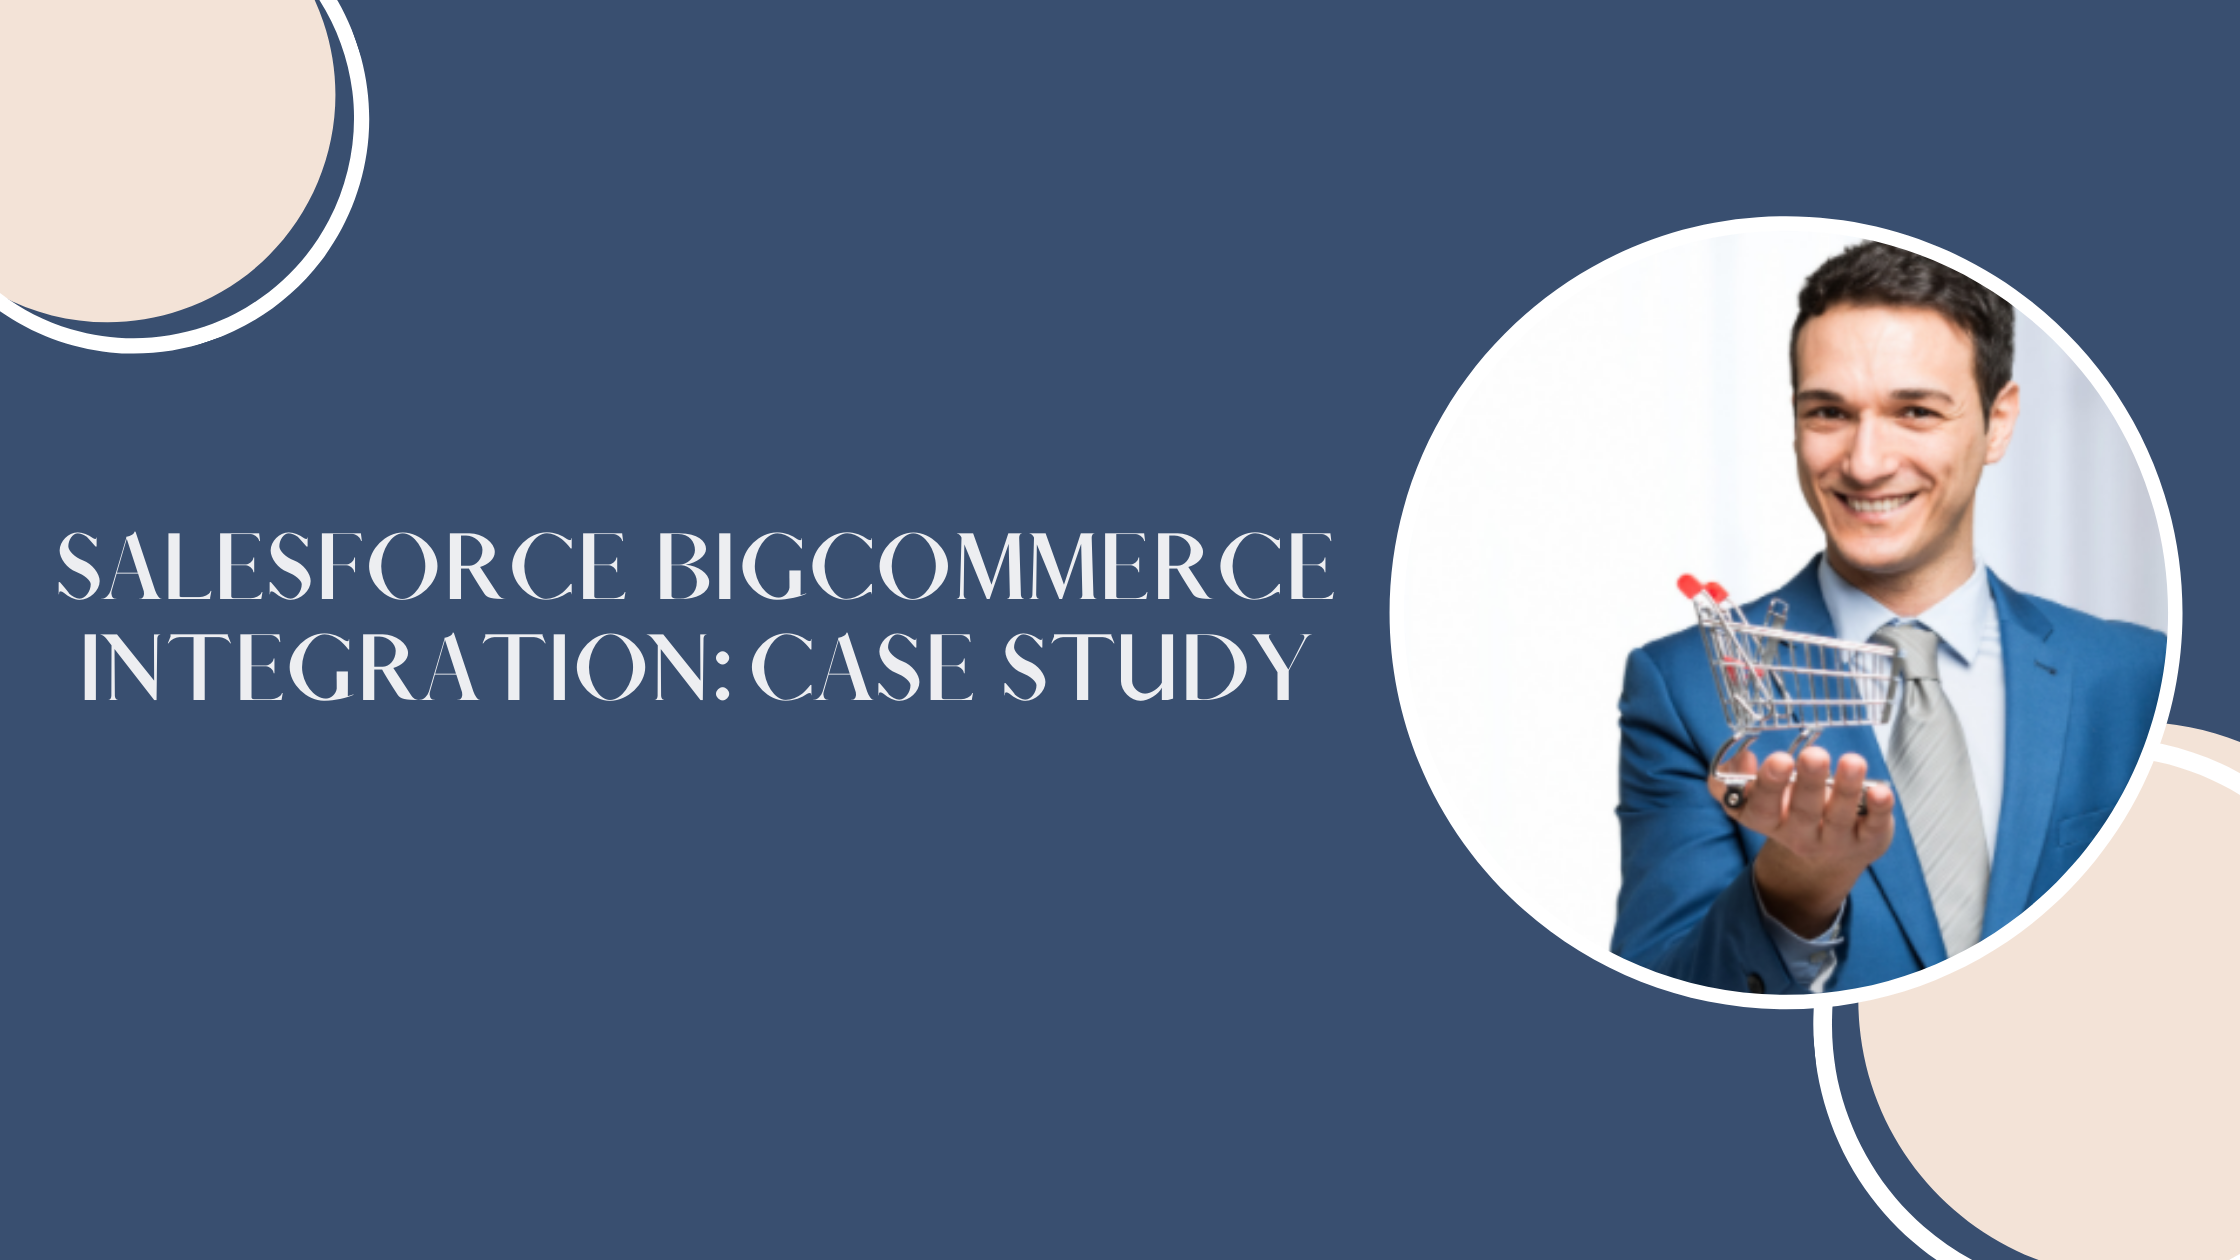 Salesforce BigCommerce Integration